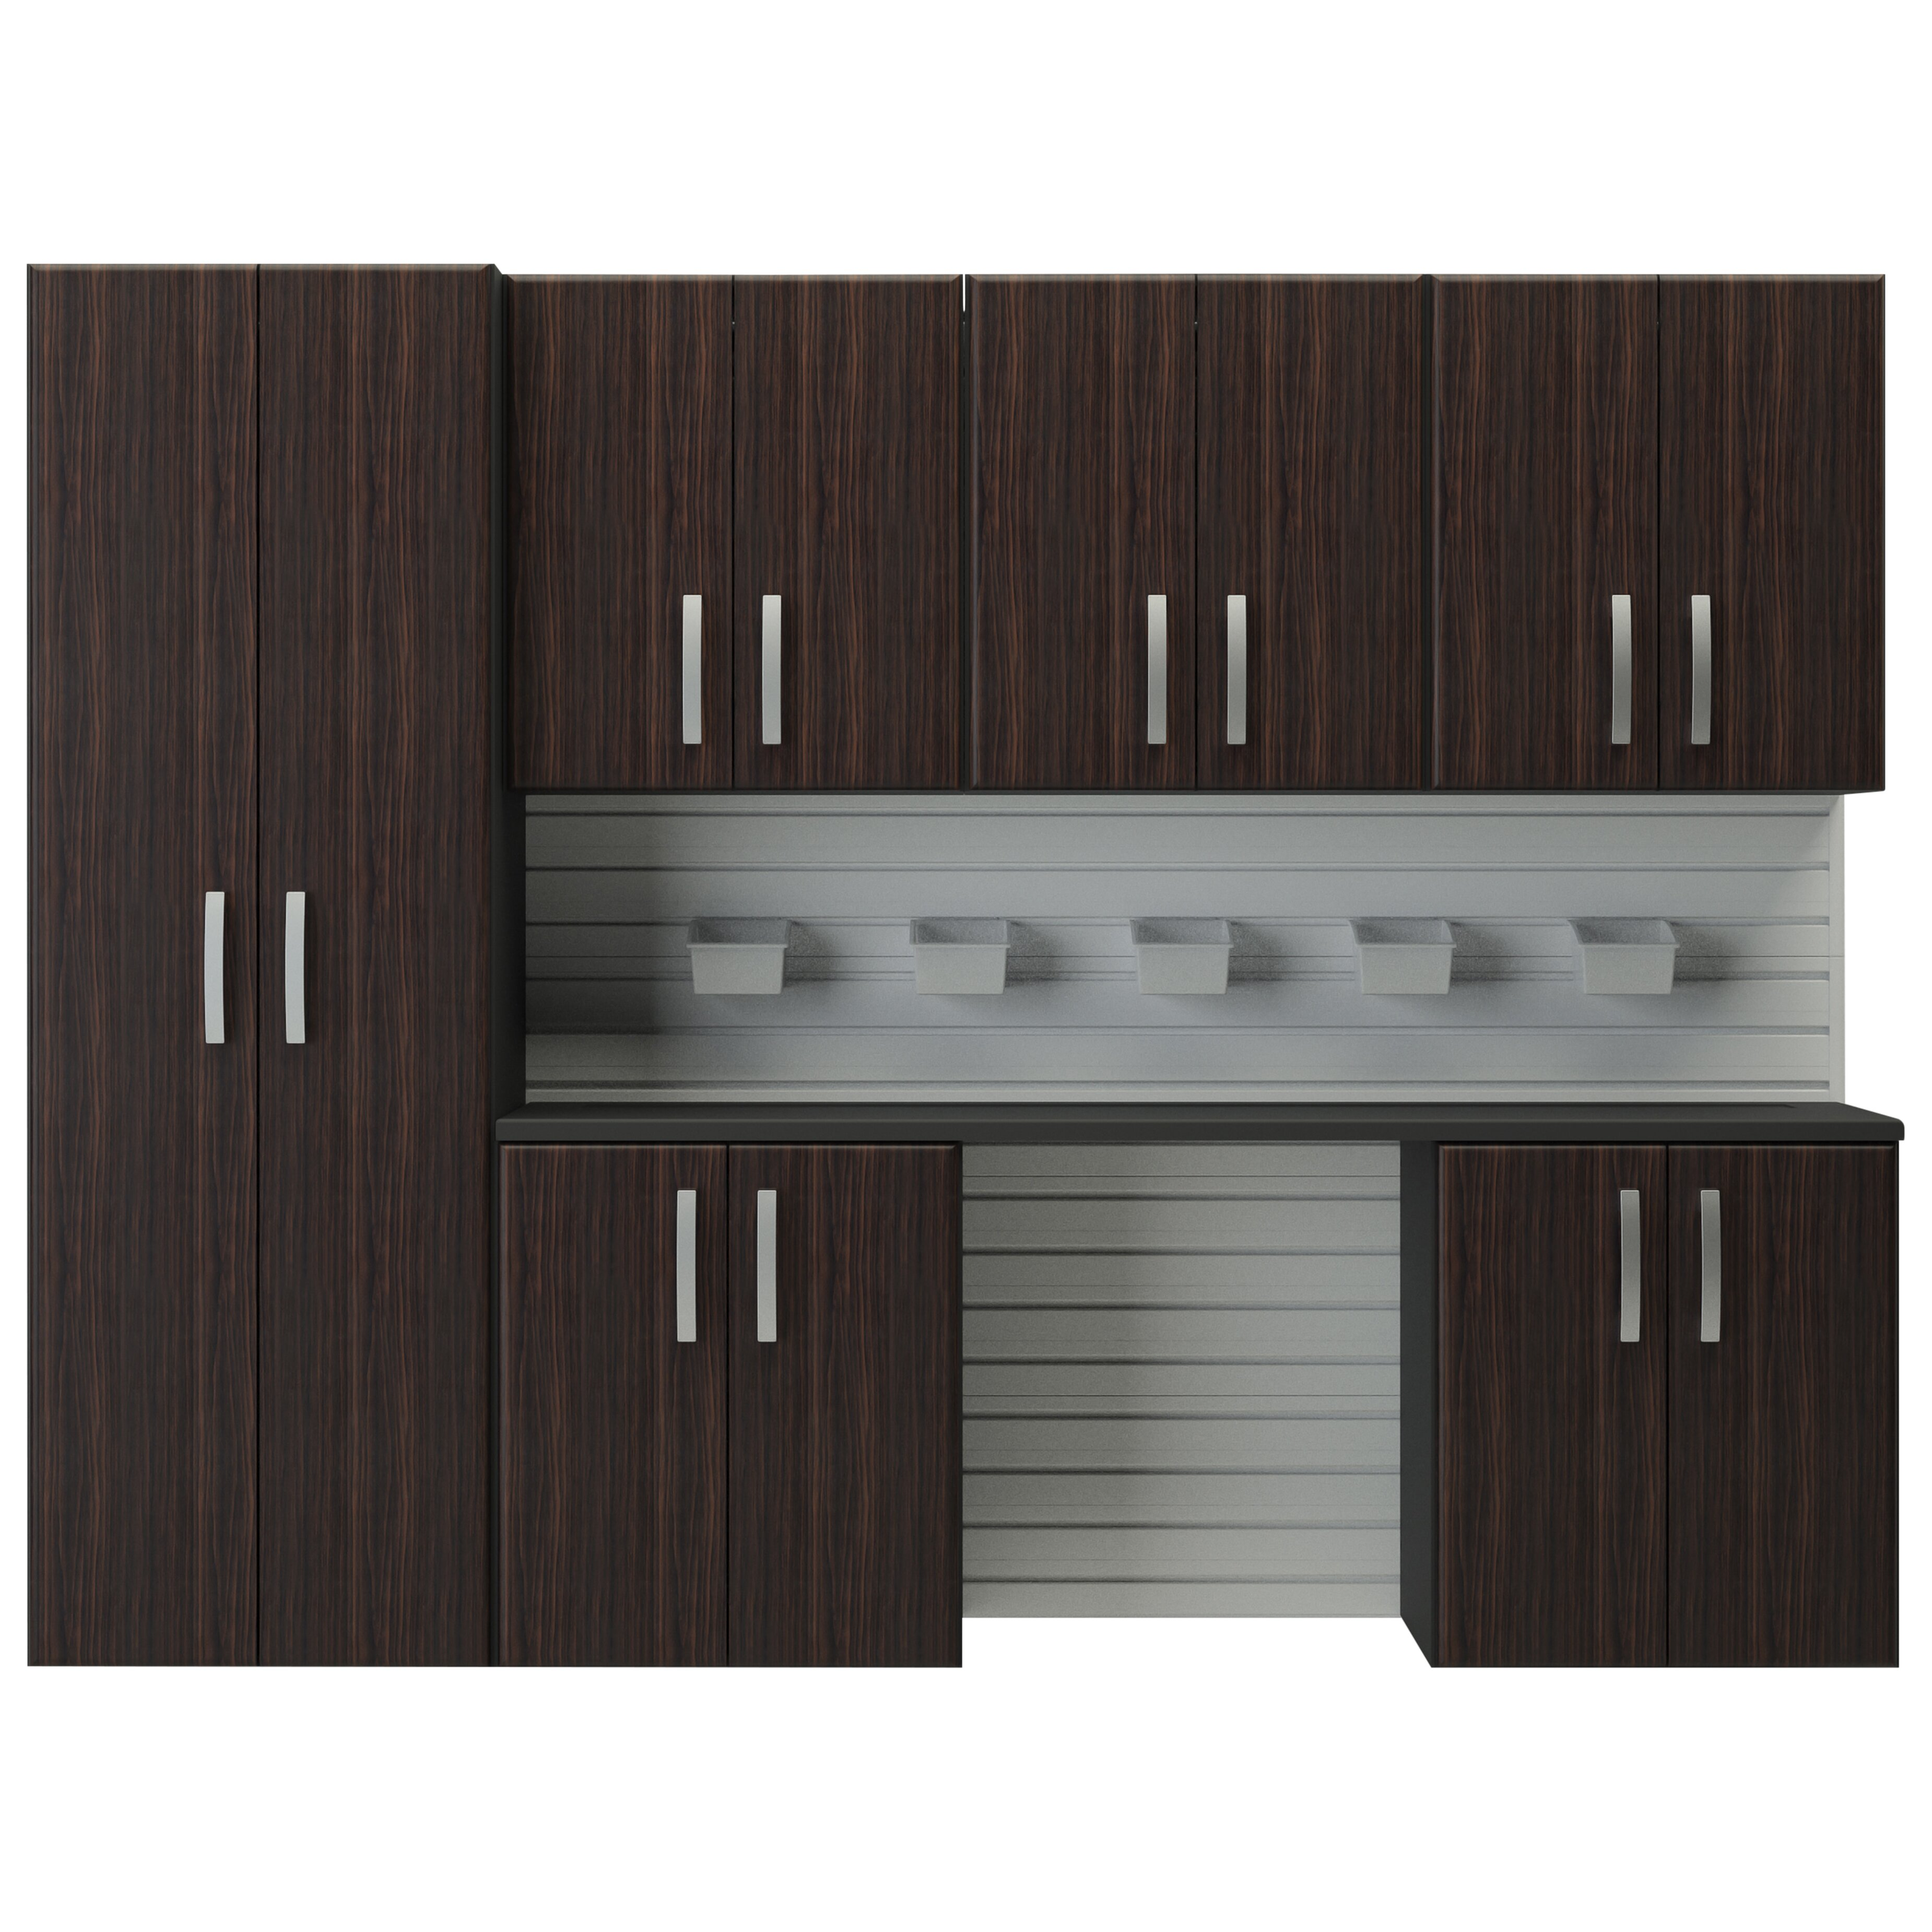 Full Kitchen Cabinet Set: Flow Wall 6' H X 8'W 7 Piece Cabinet Set & Reviews